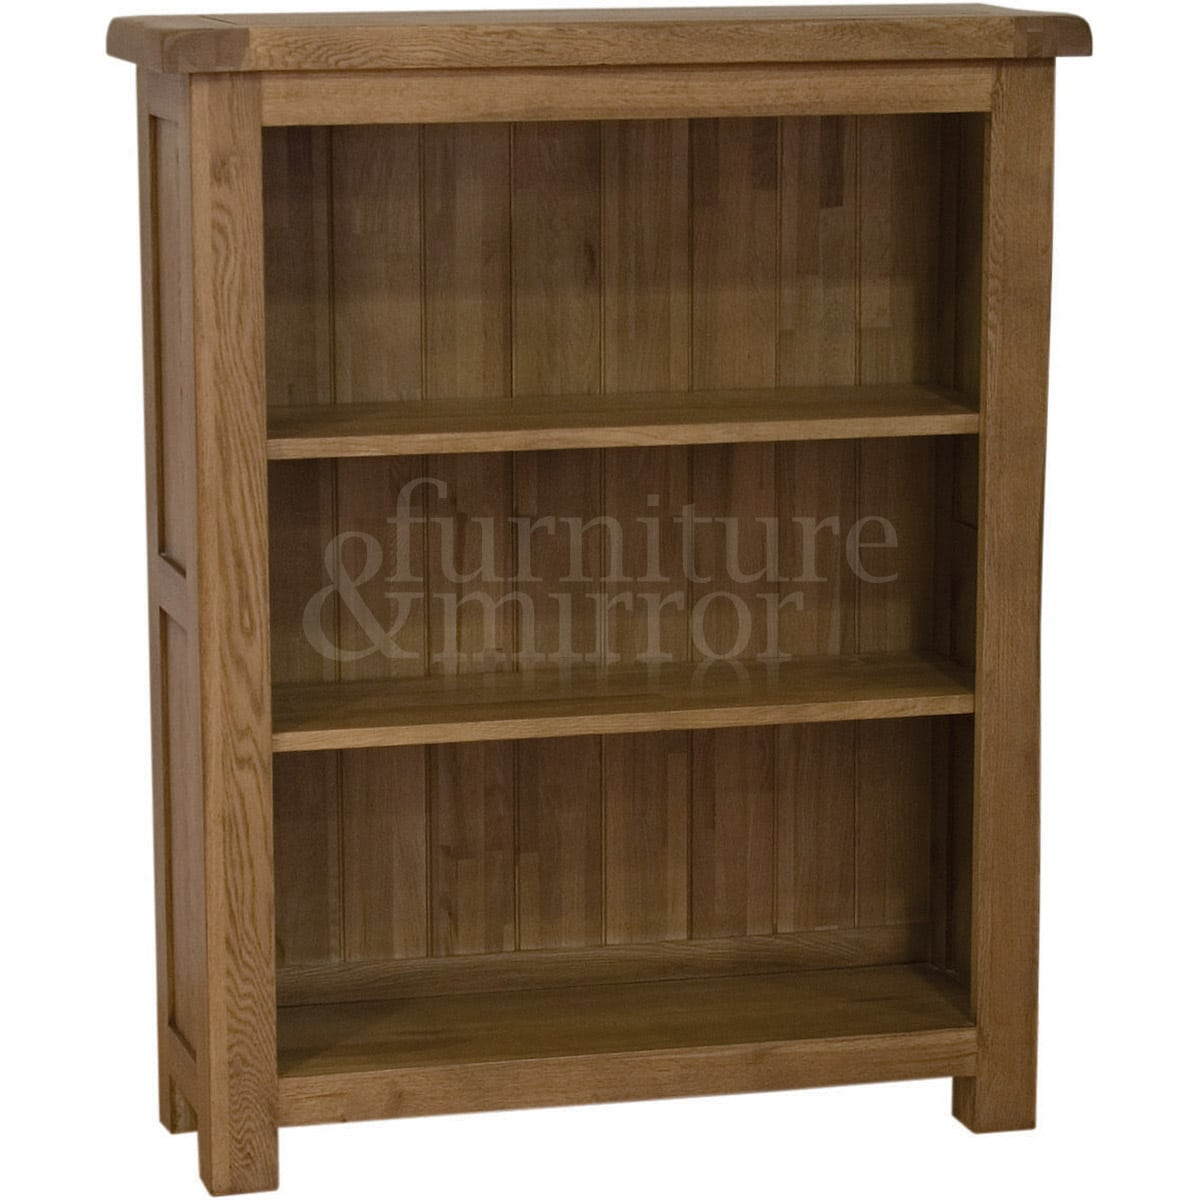 Rustic small bookcase furniture and mirror for Furniture and mirror